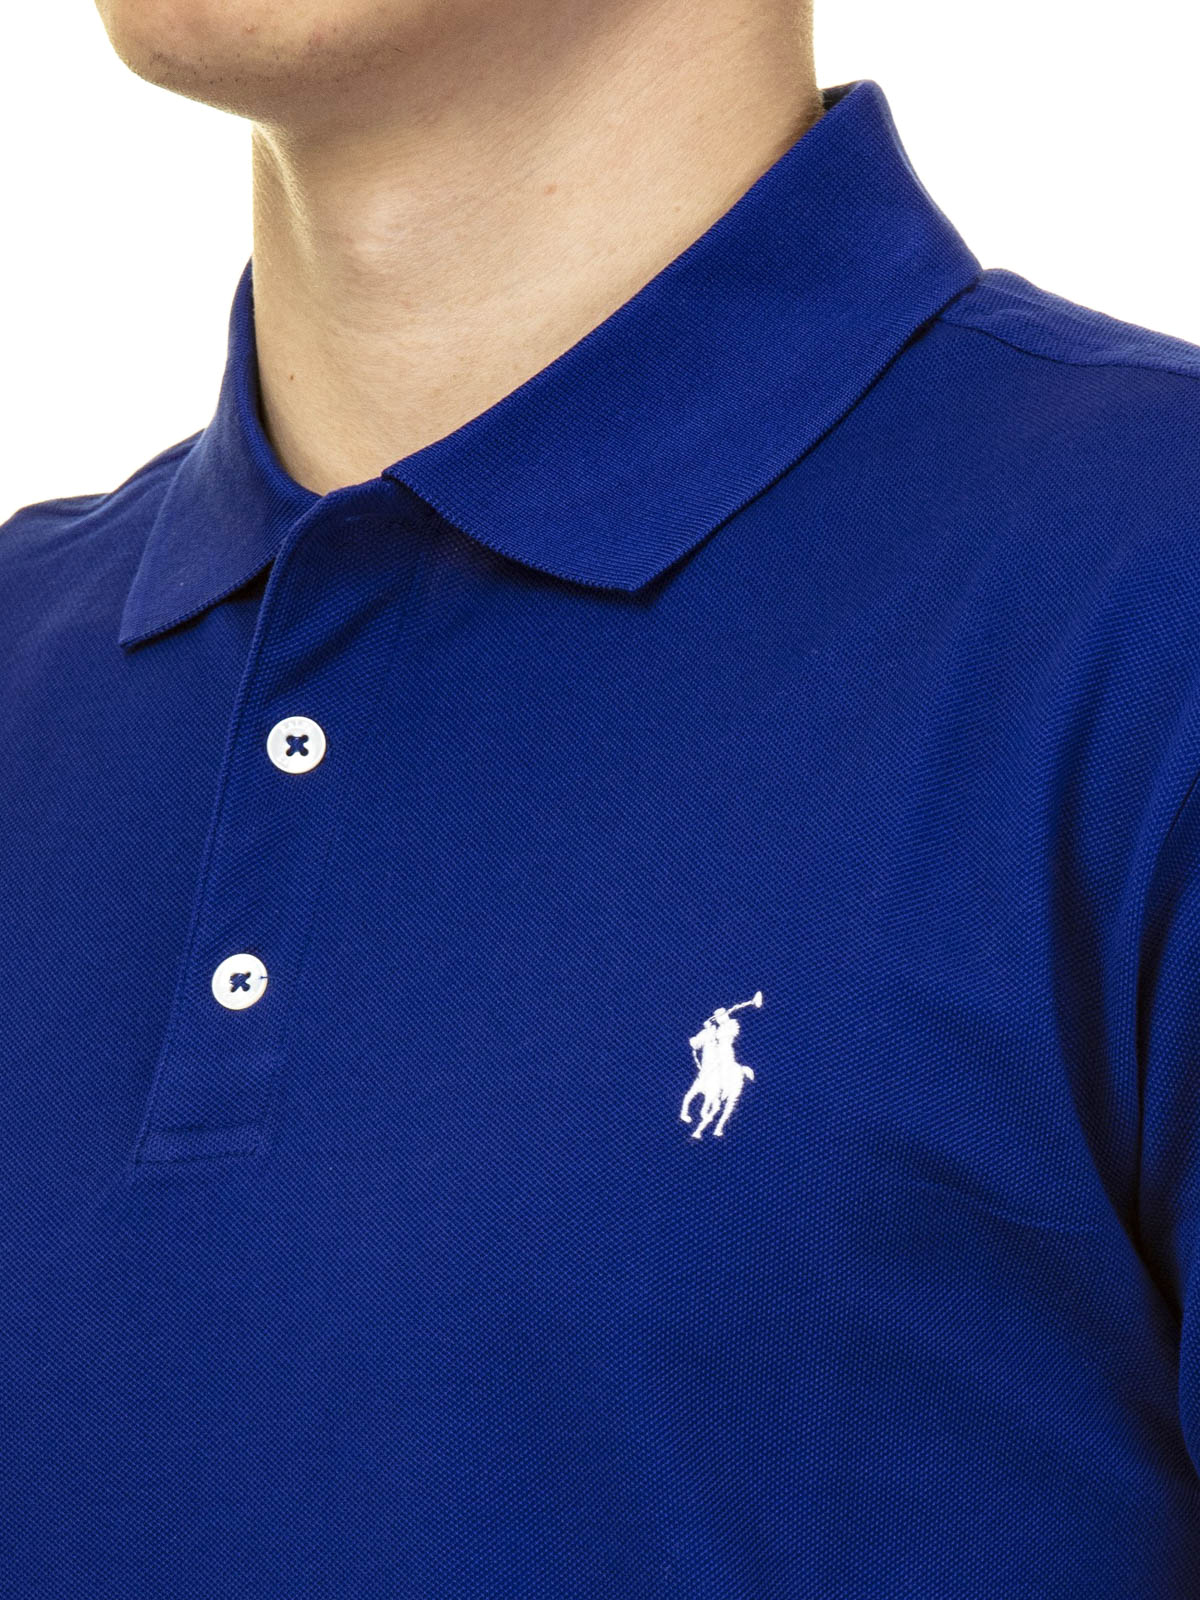 temperamento Piantina Intarsio  Polo Ralph Lauren - Logo royal blue pique cotton polo shirt - polo shirts -  710541705112